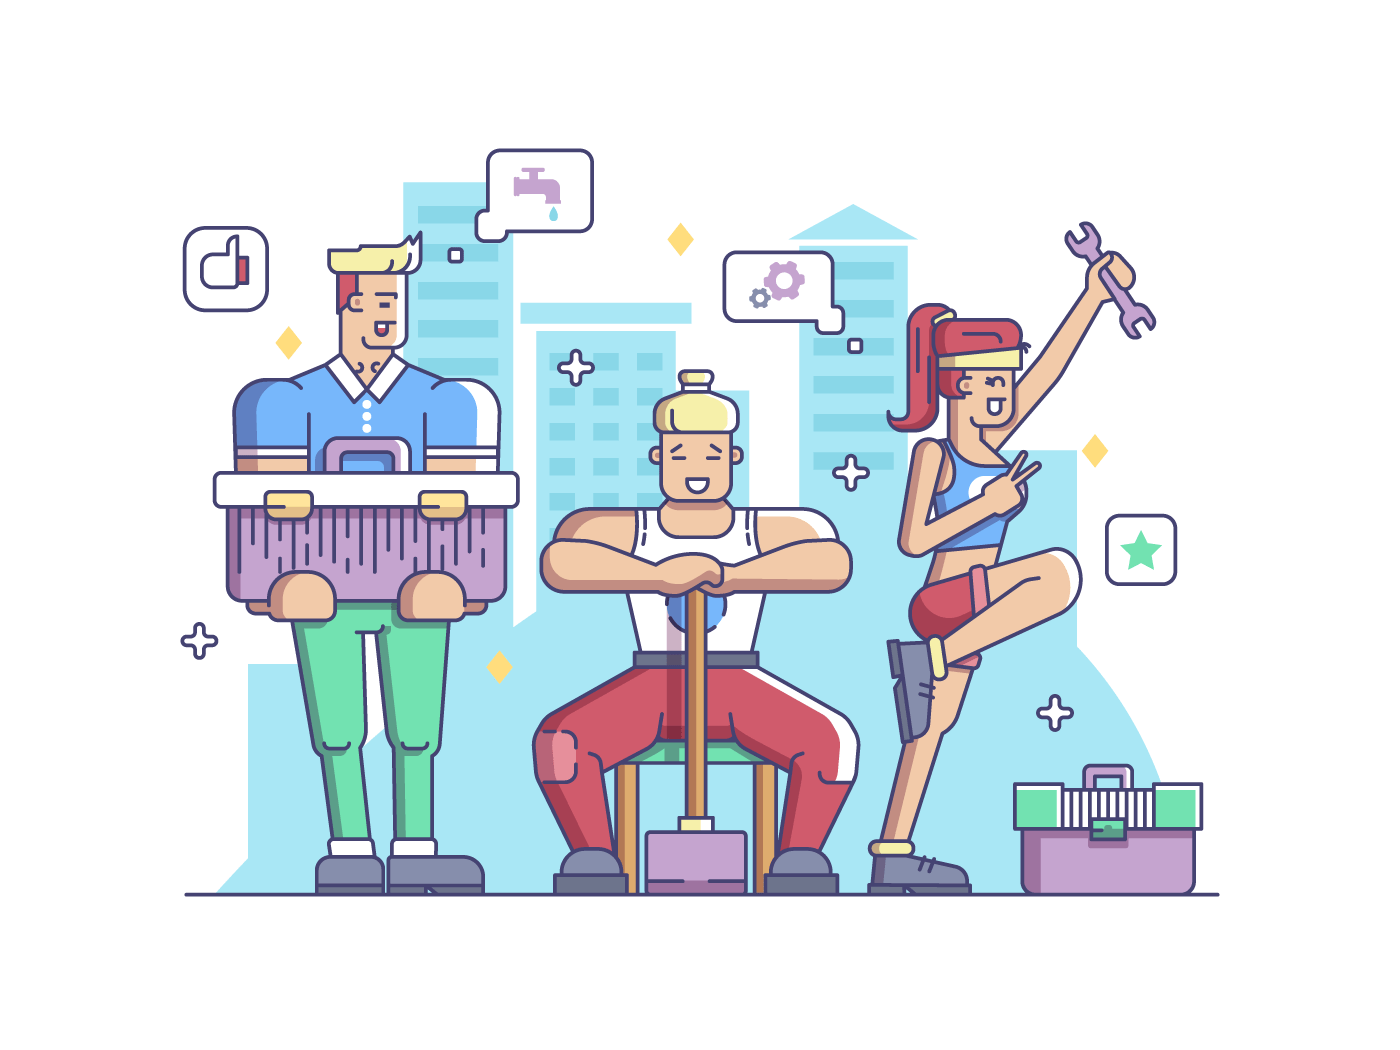 Workers, man and woman illustration